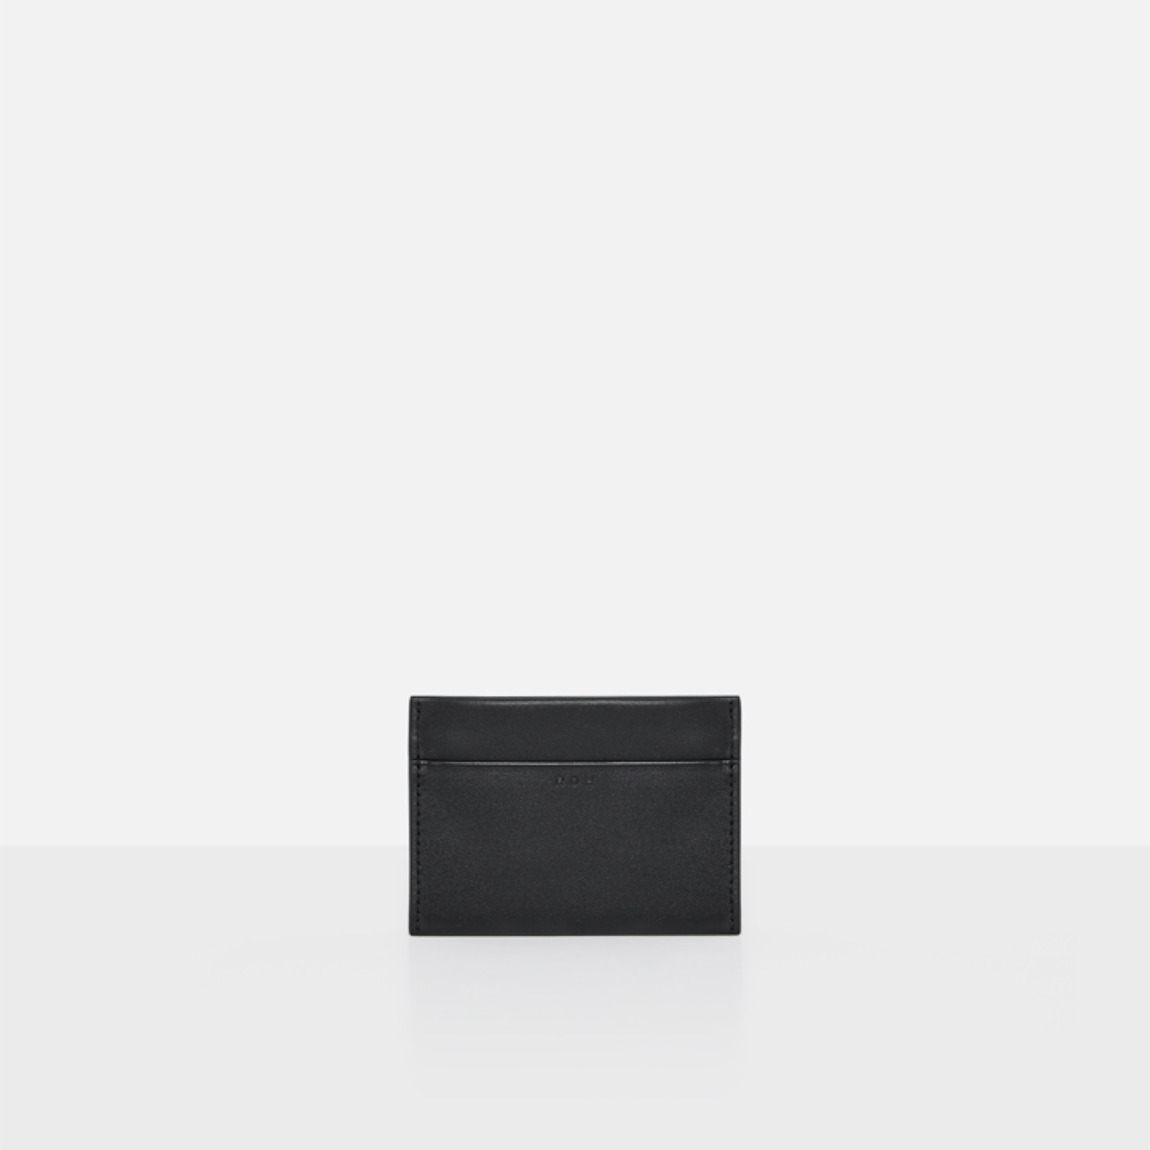 Square card wallet Black